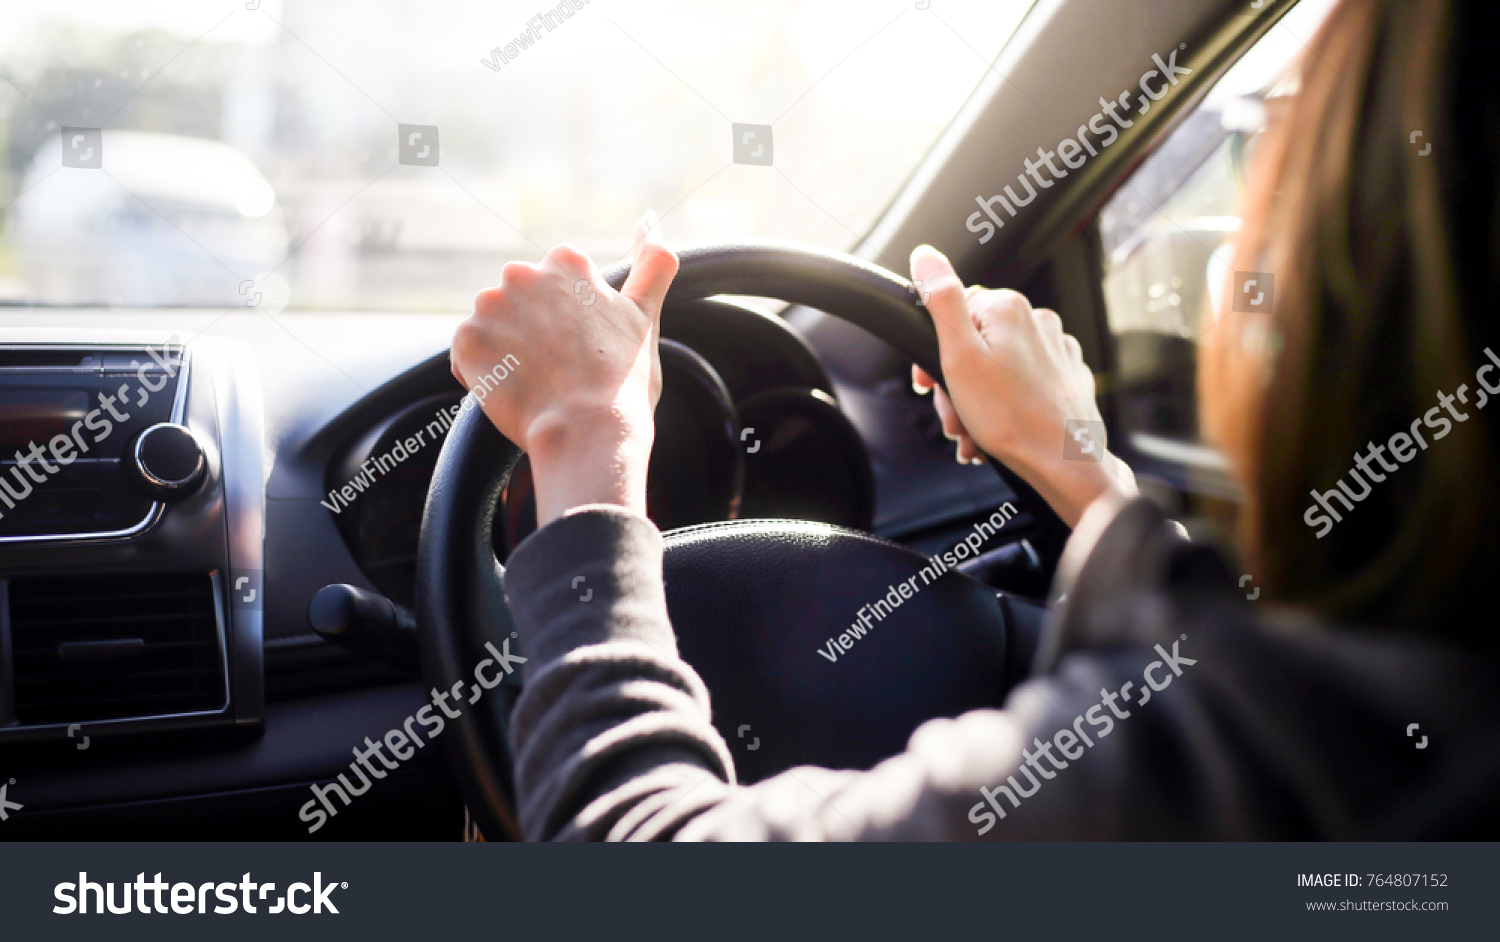 Female hands on the steering wheel of a car while driving. sunset the background, the windshield and road #764807152